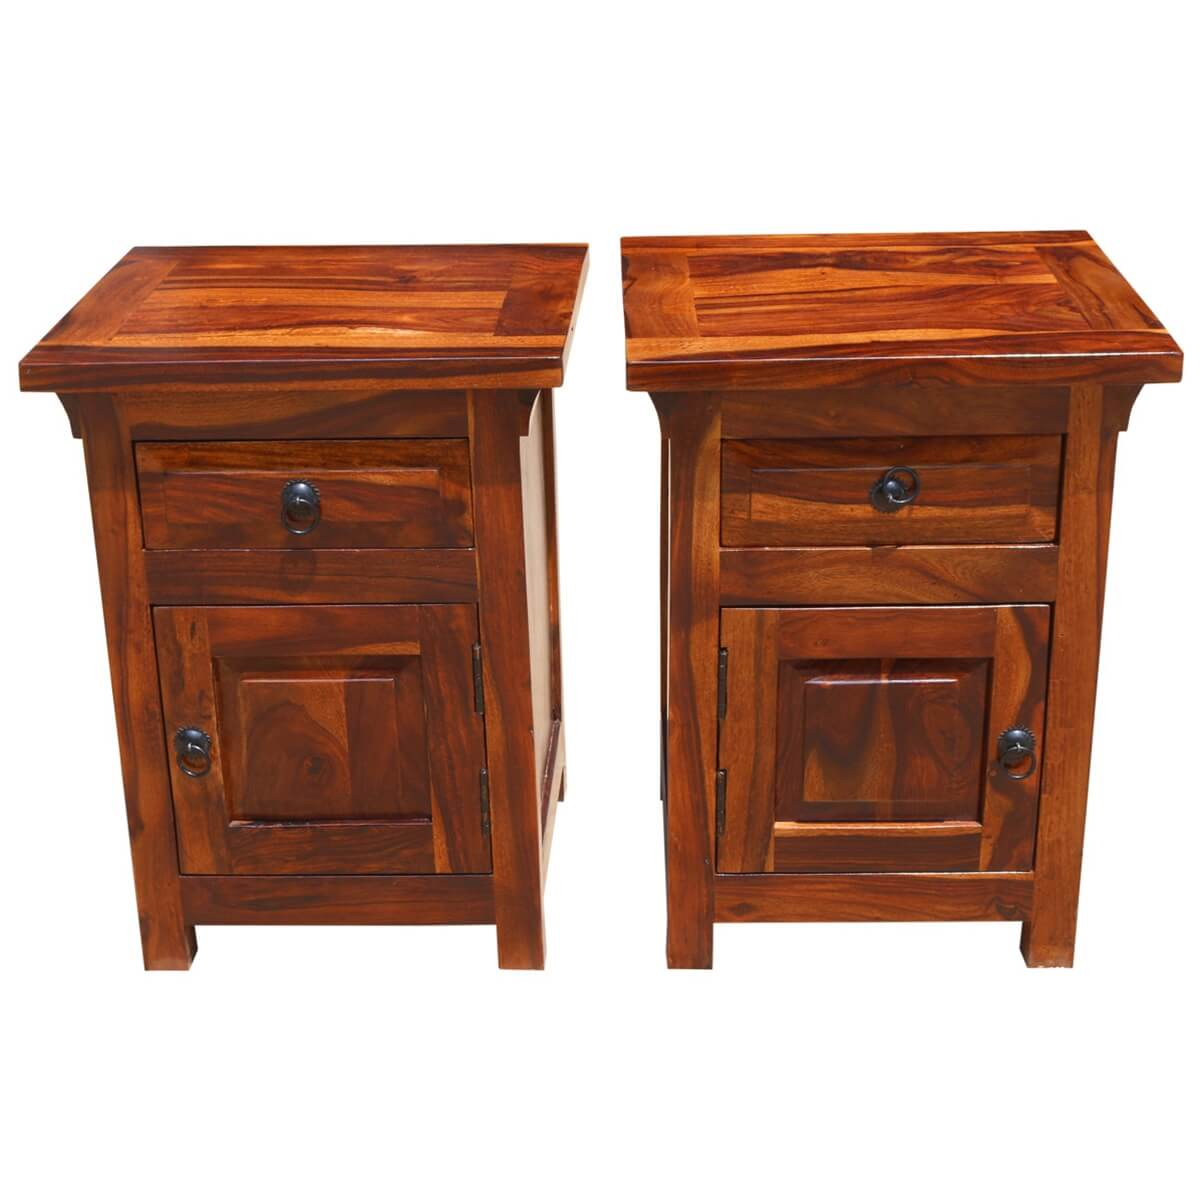 Rustic farmhouse solid wood nightstand end table cabinets for Rustic nightstands